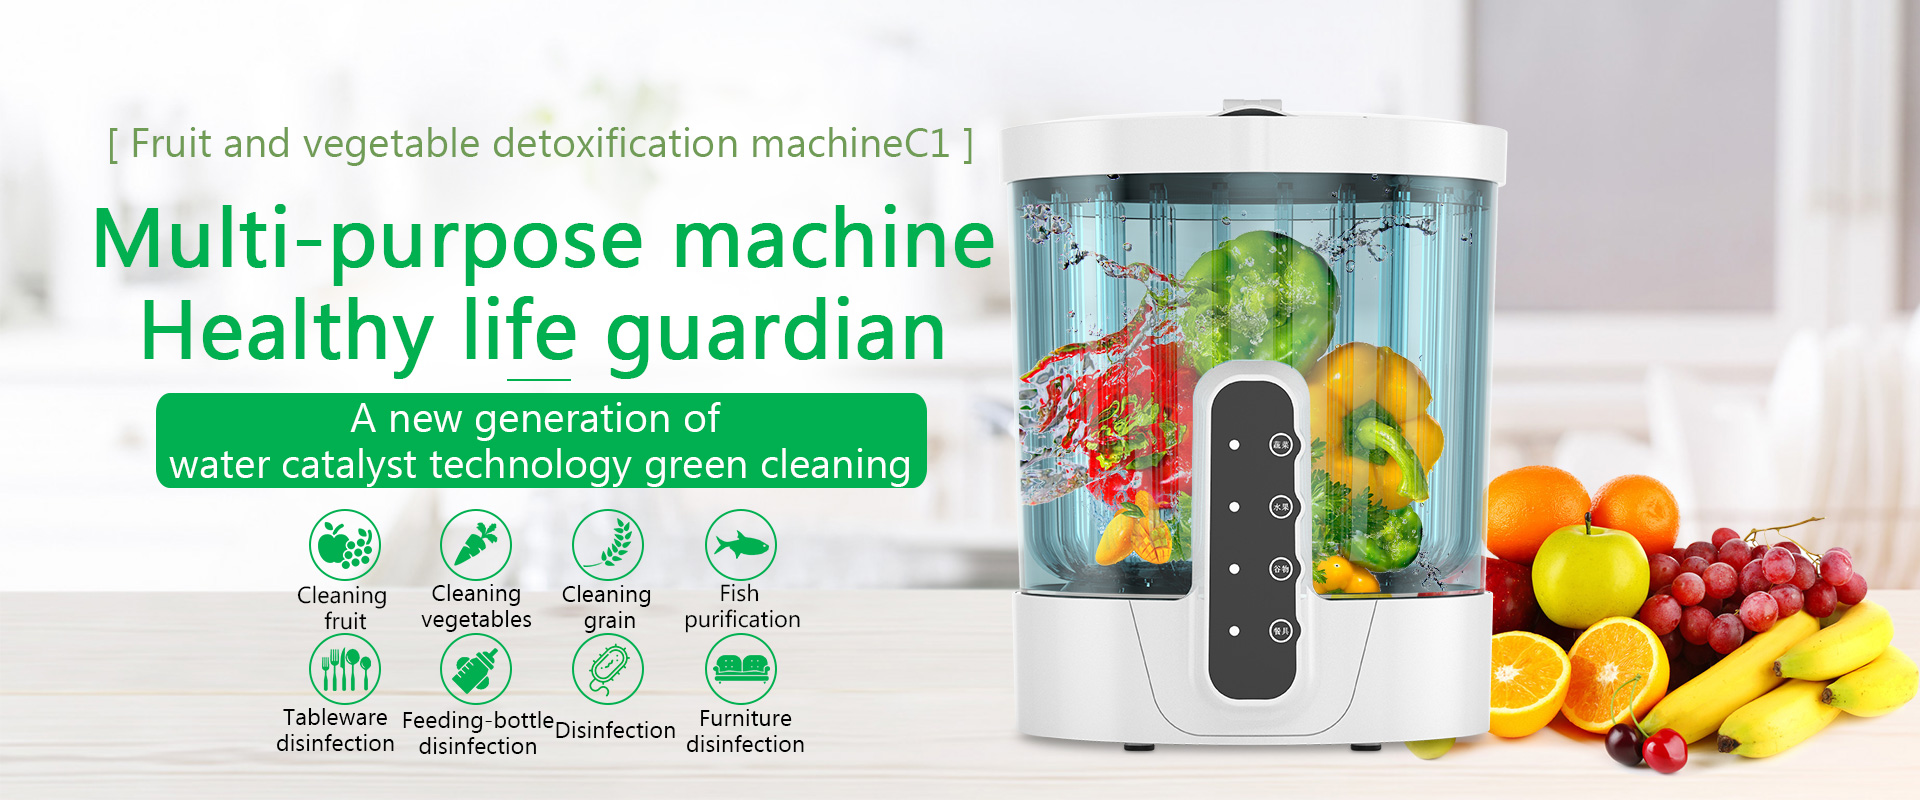 What is the function of the fruit and vegetable cleaner?